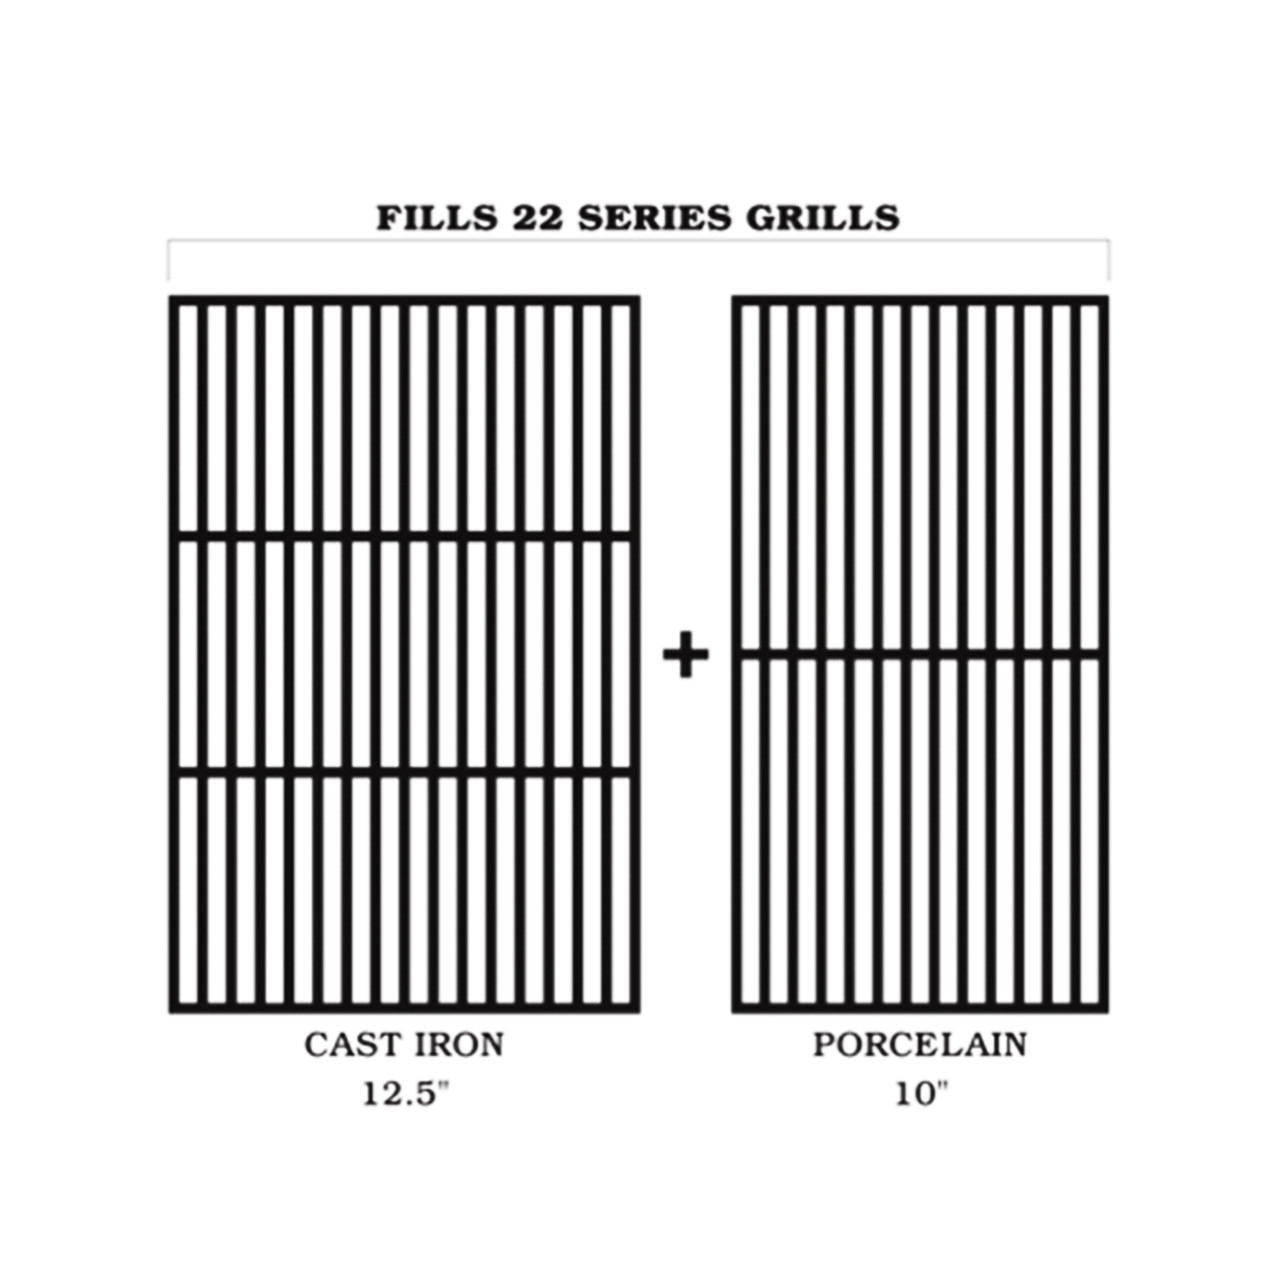 BAC366 TRAEGER GRILLS CAST IRON/PORCELAIN GRILL GRATE KIT - 22 SERIES